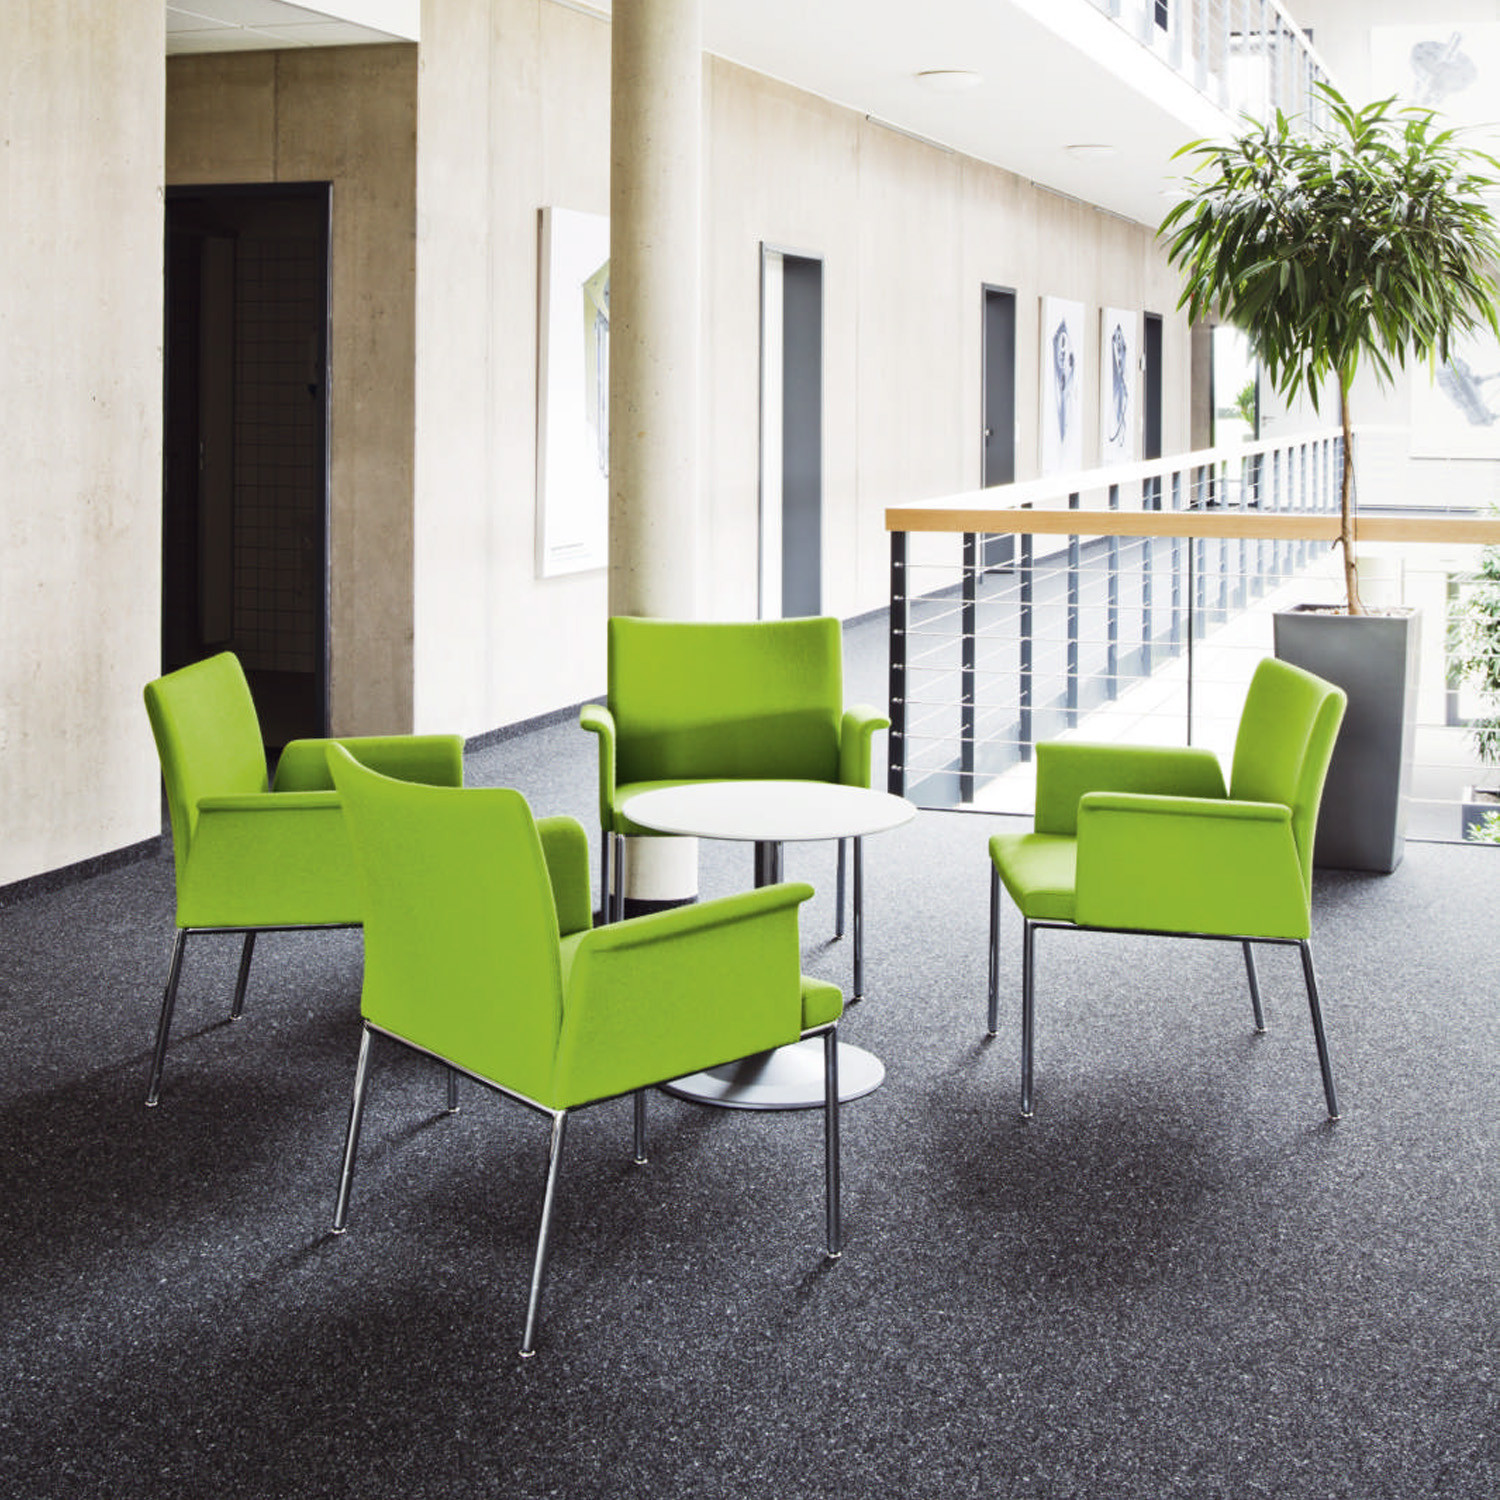 Milano Upholstered Seating for Waiting Areas